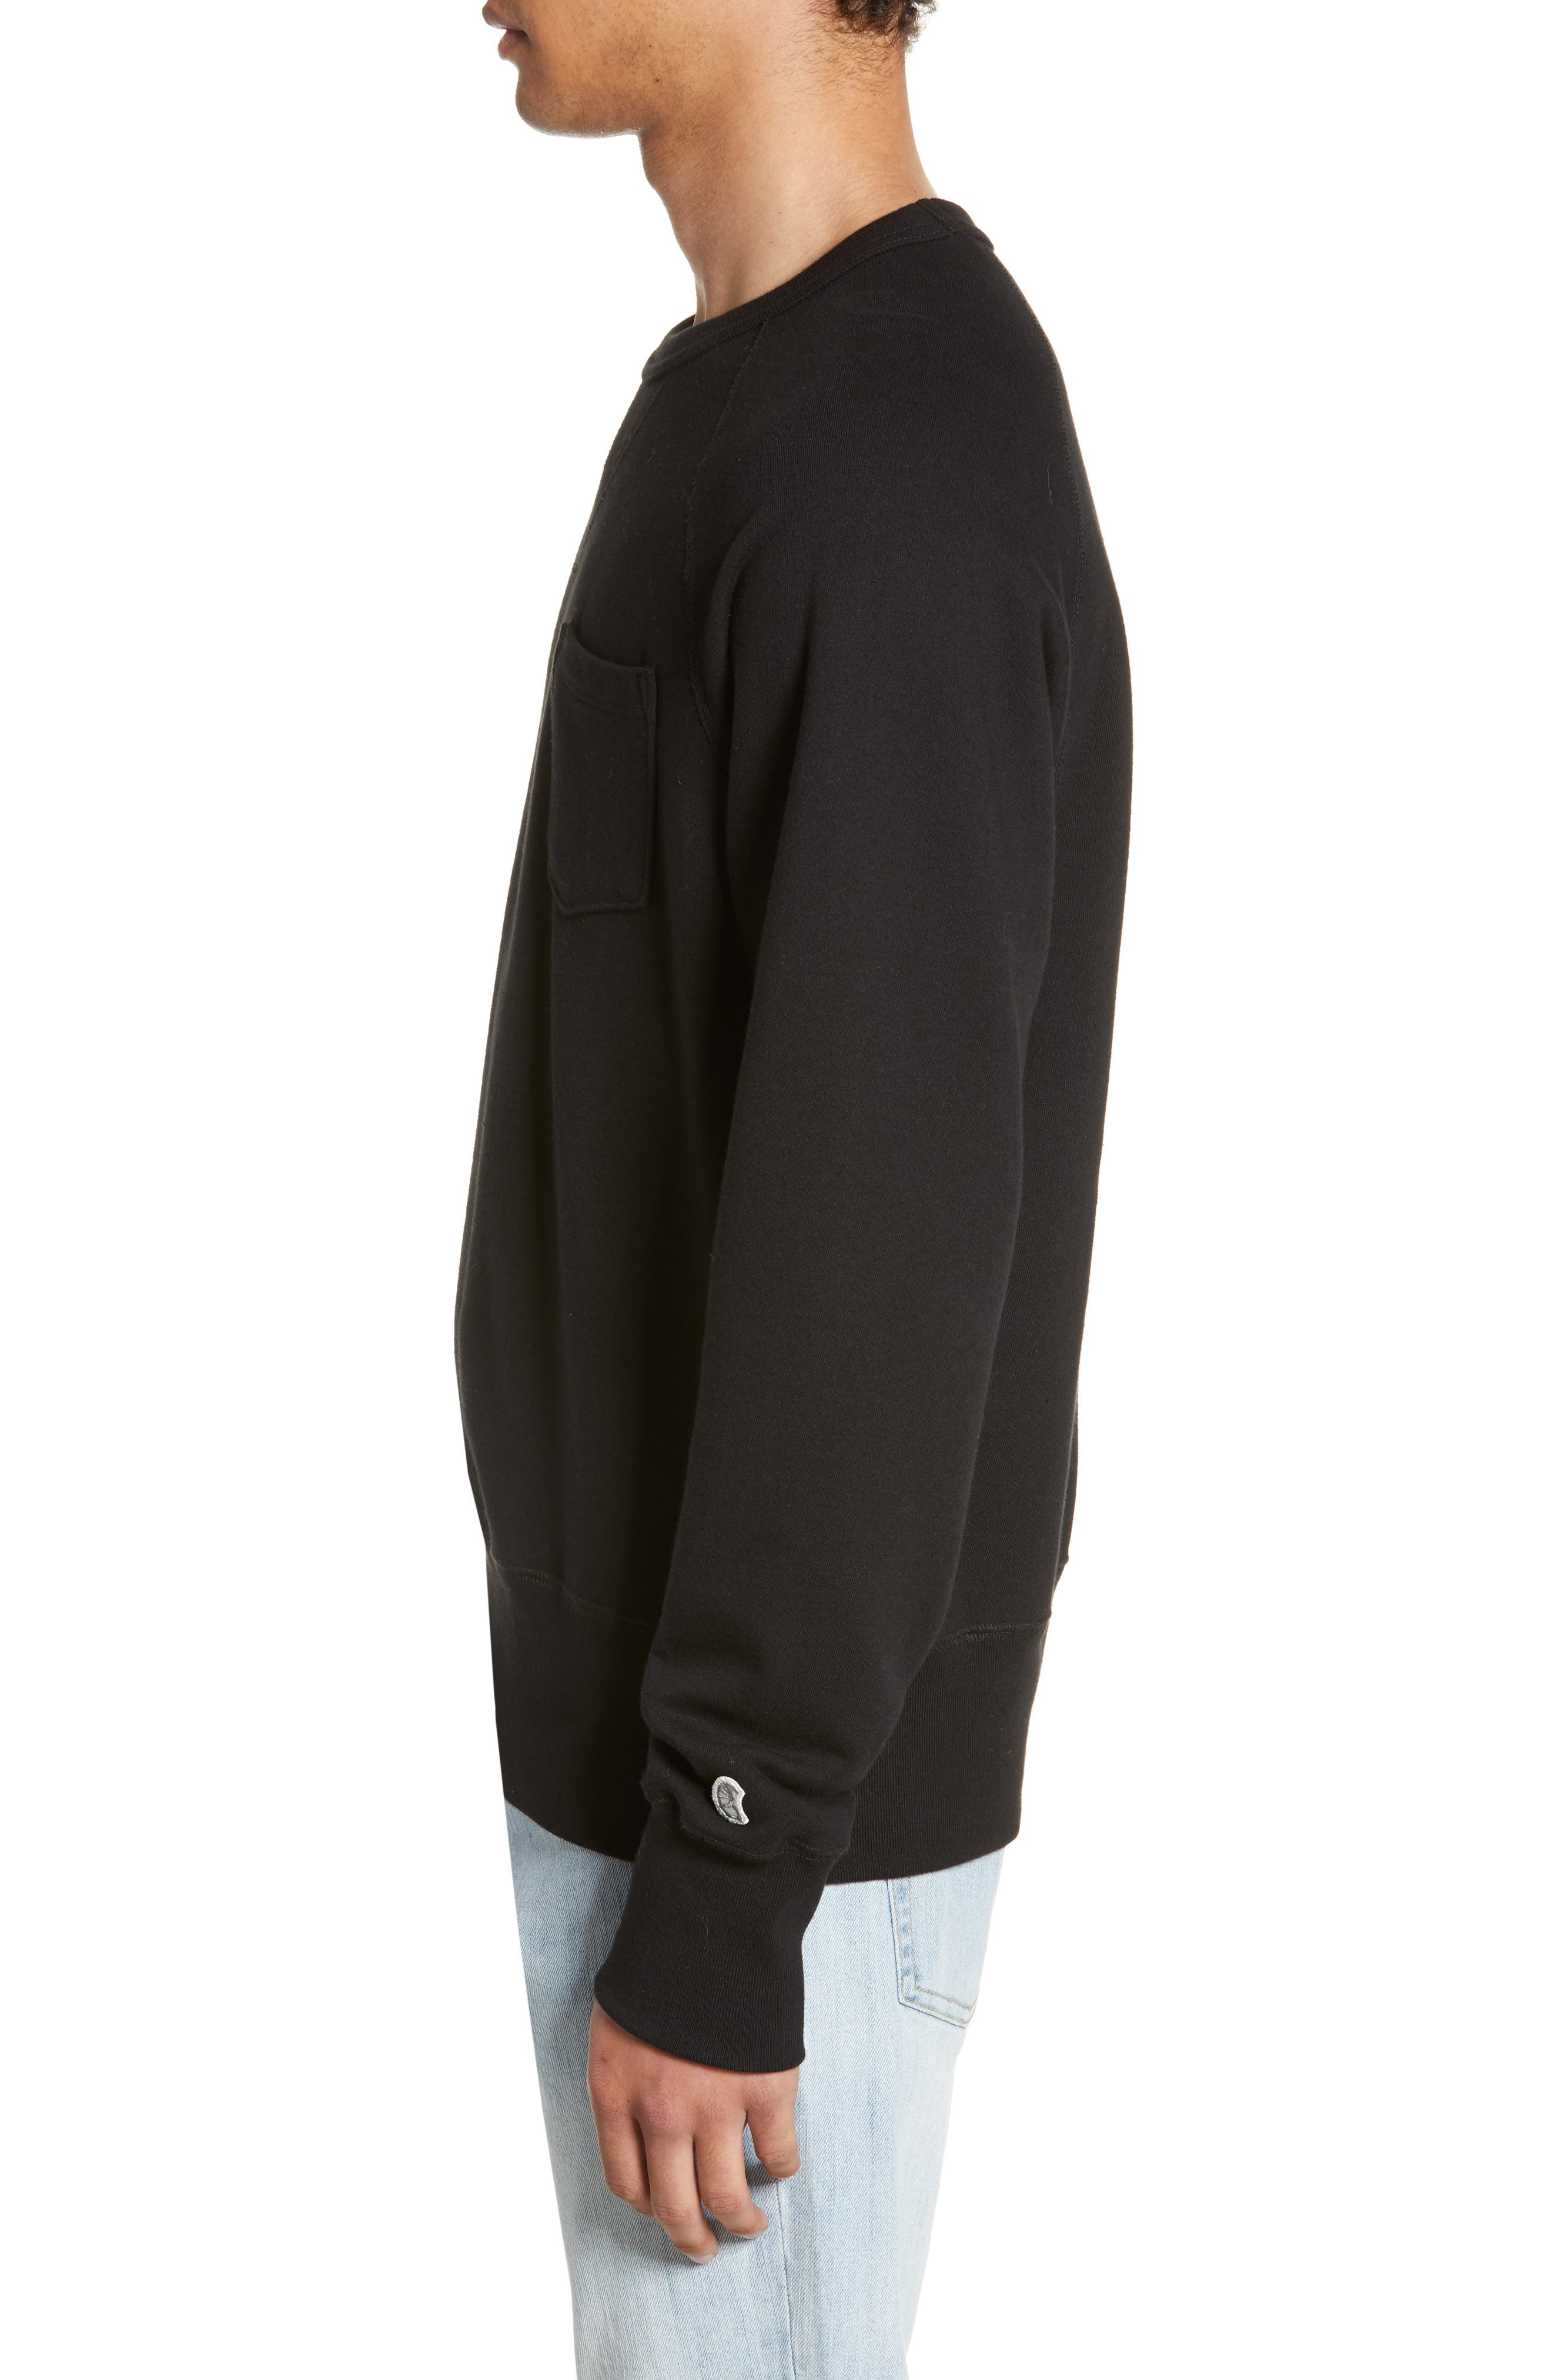 TODD SNYDER + CHAMPION, Todd Snyder Classic Pocket Sweatshirt, Alternate thumbnail 3, color, BLACK